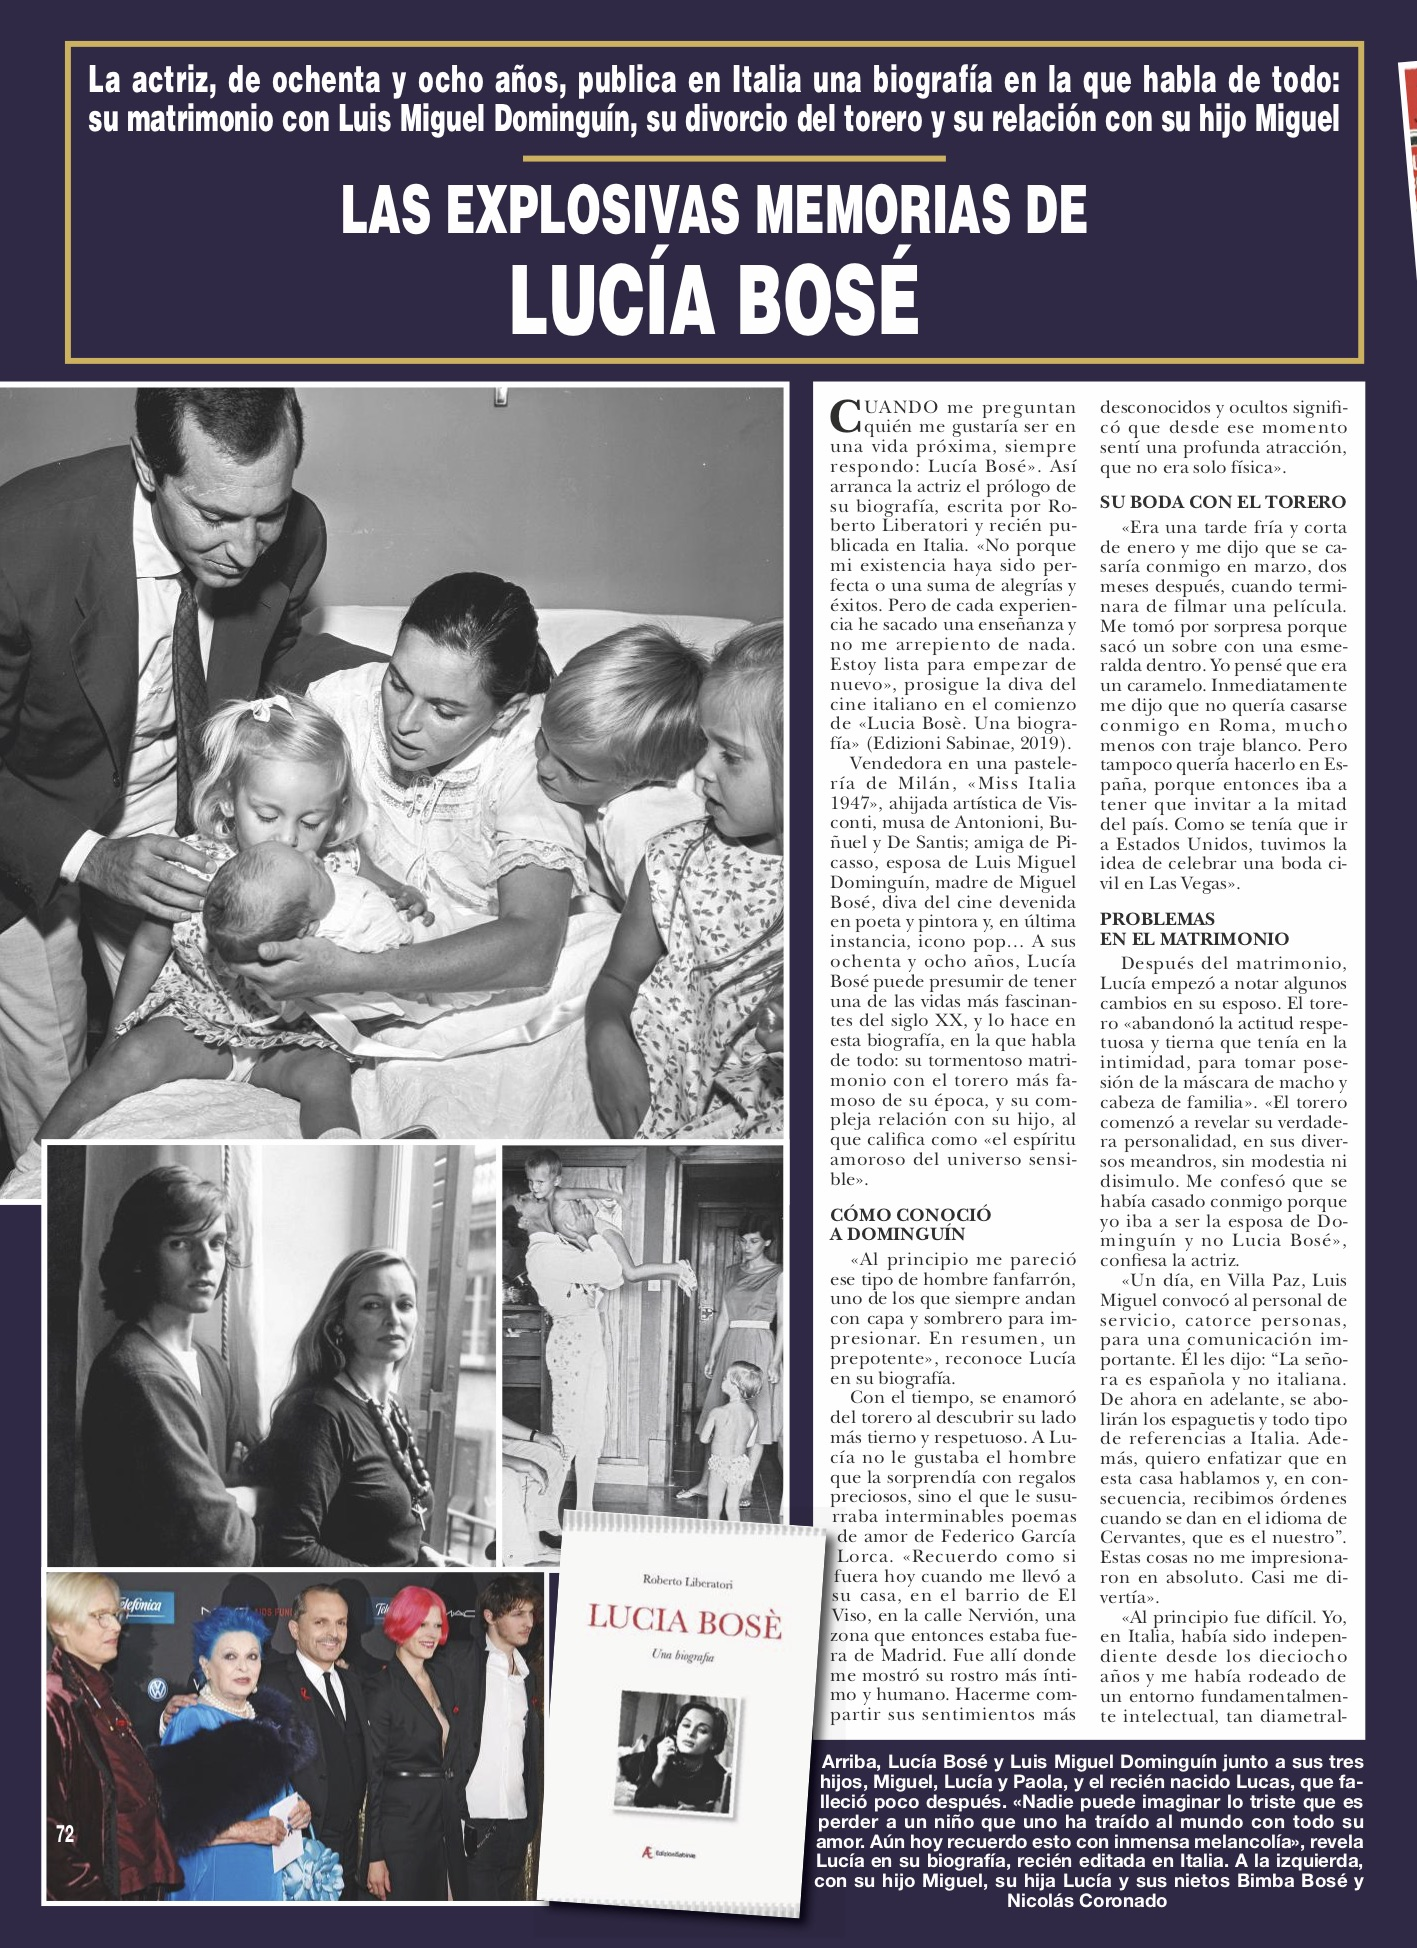 hoes3927-072-073-luciabose-trascinato